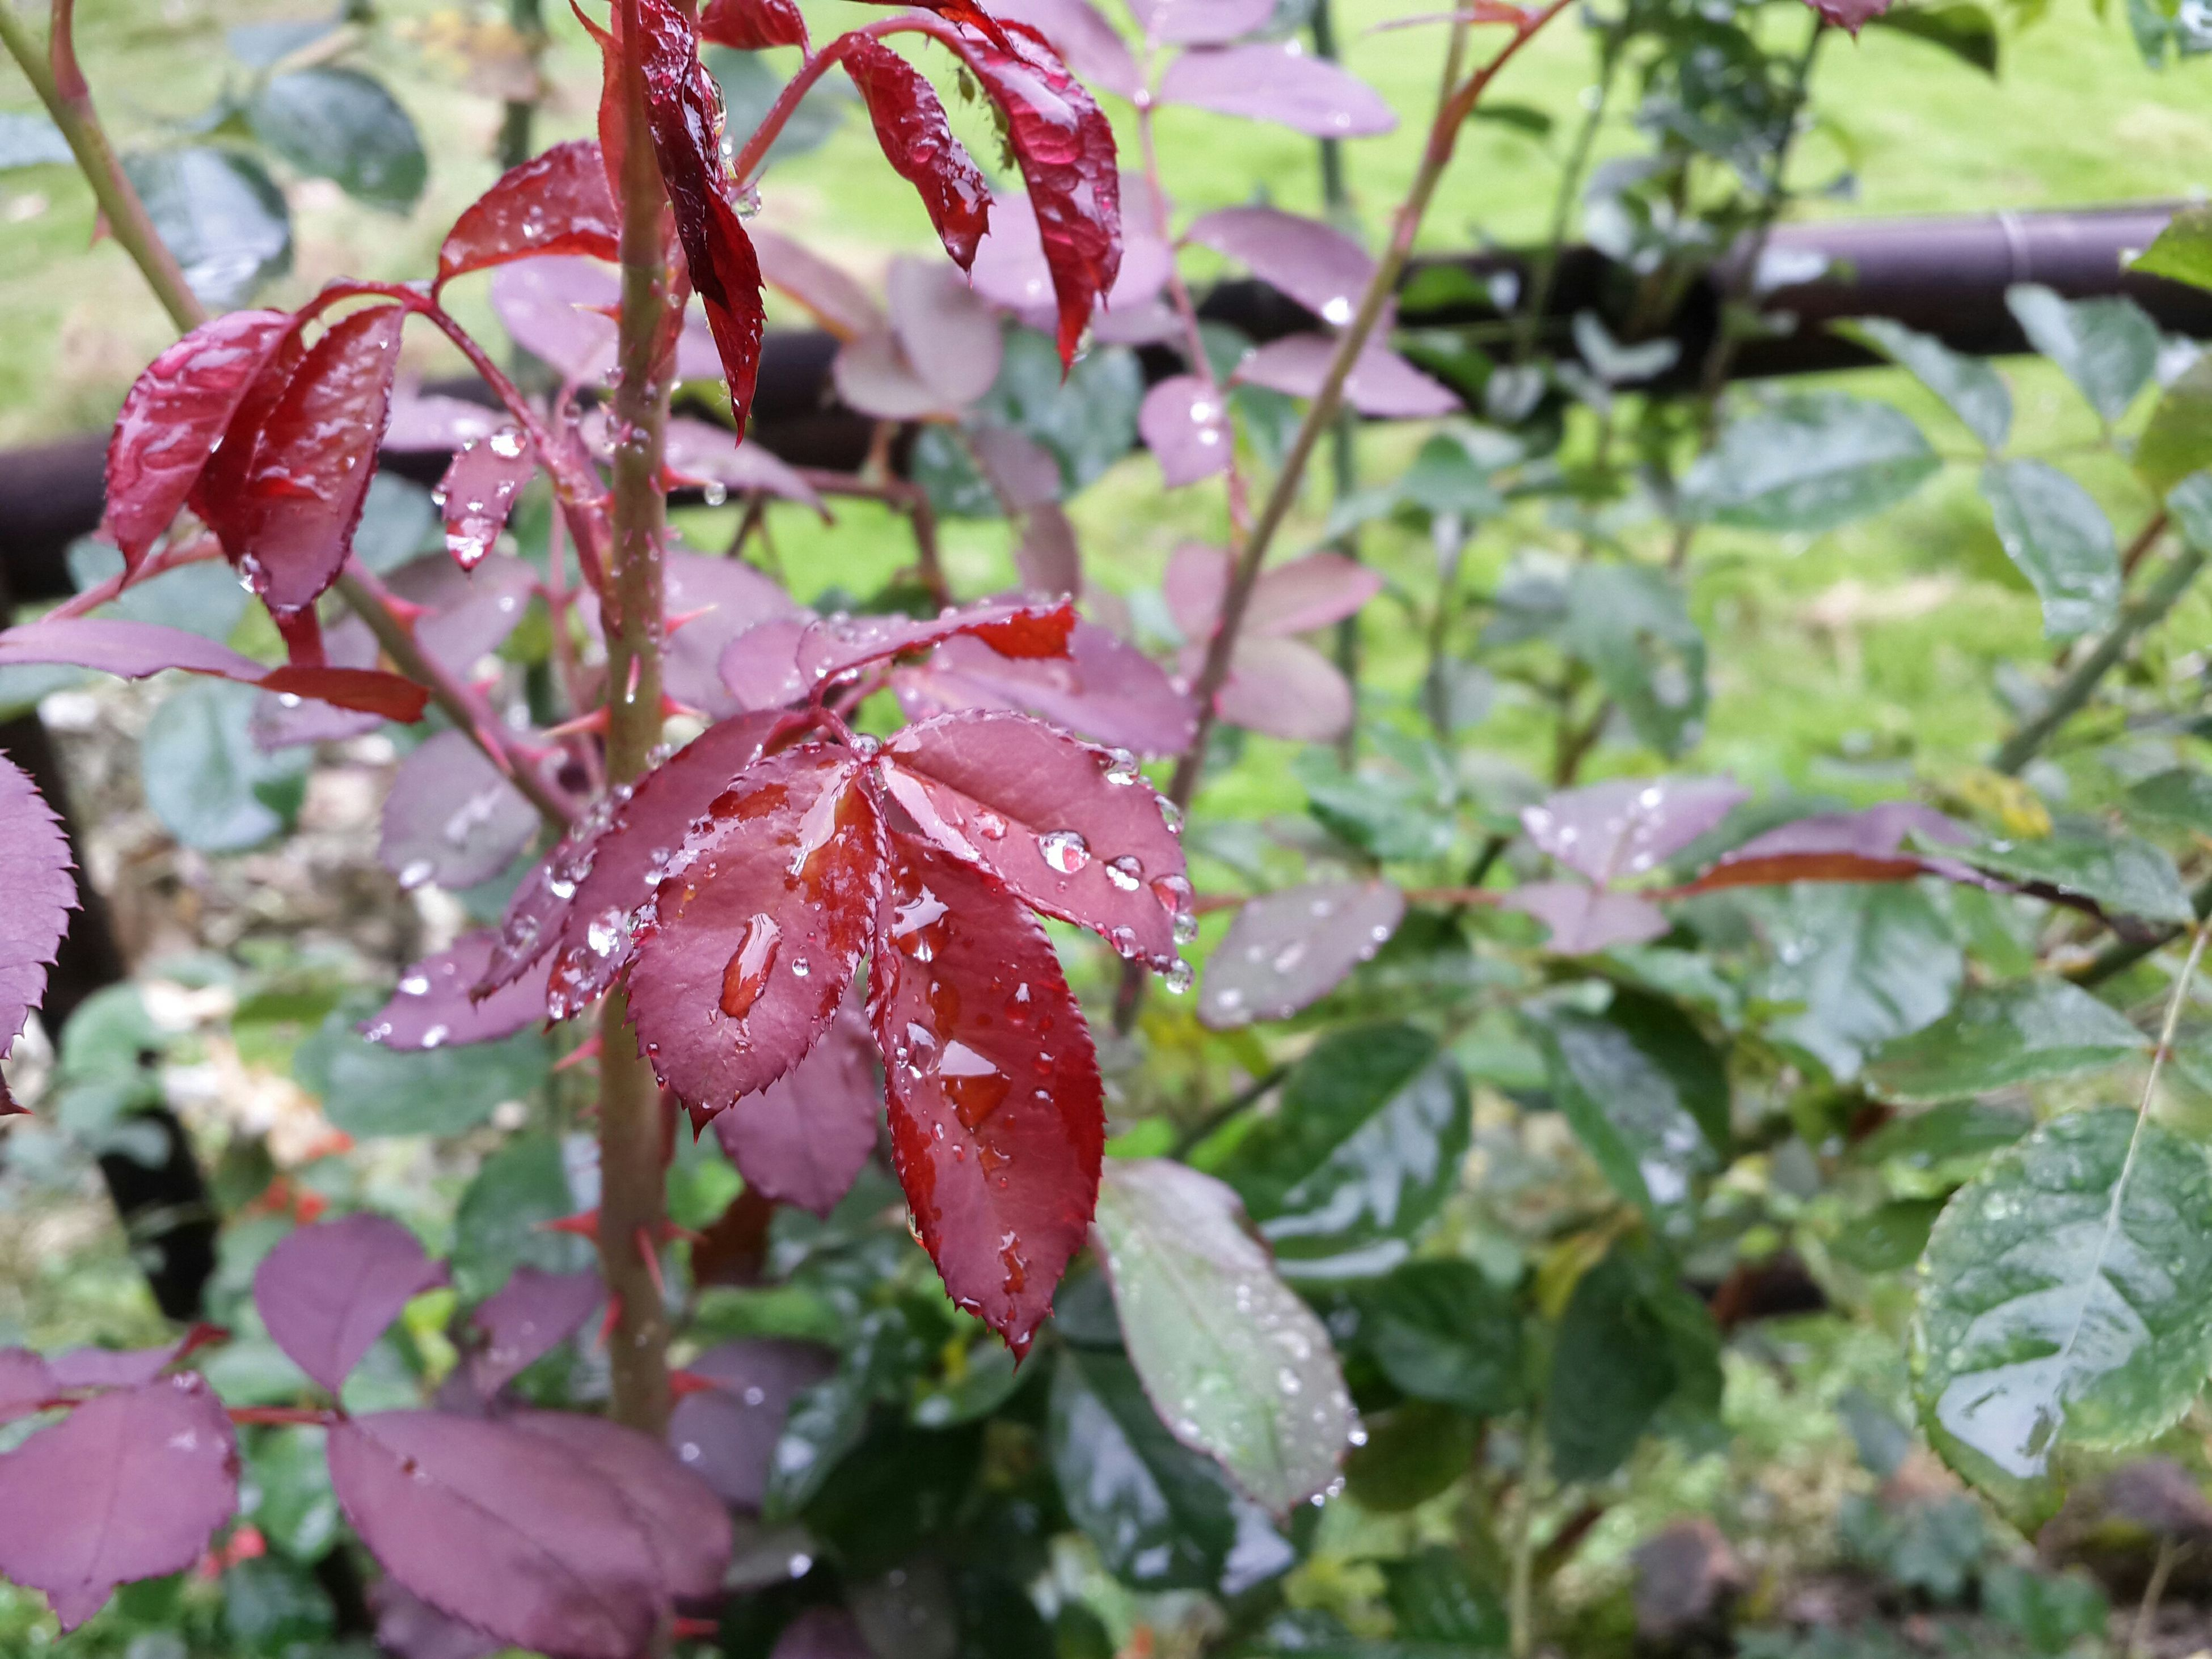 drop, growth, close-up, wet, focus on foreground, freshness, water, leaf, season, nature, beauty in nature, fragility, weather, dew, flower, plant, red, raindrop, petal, rain